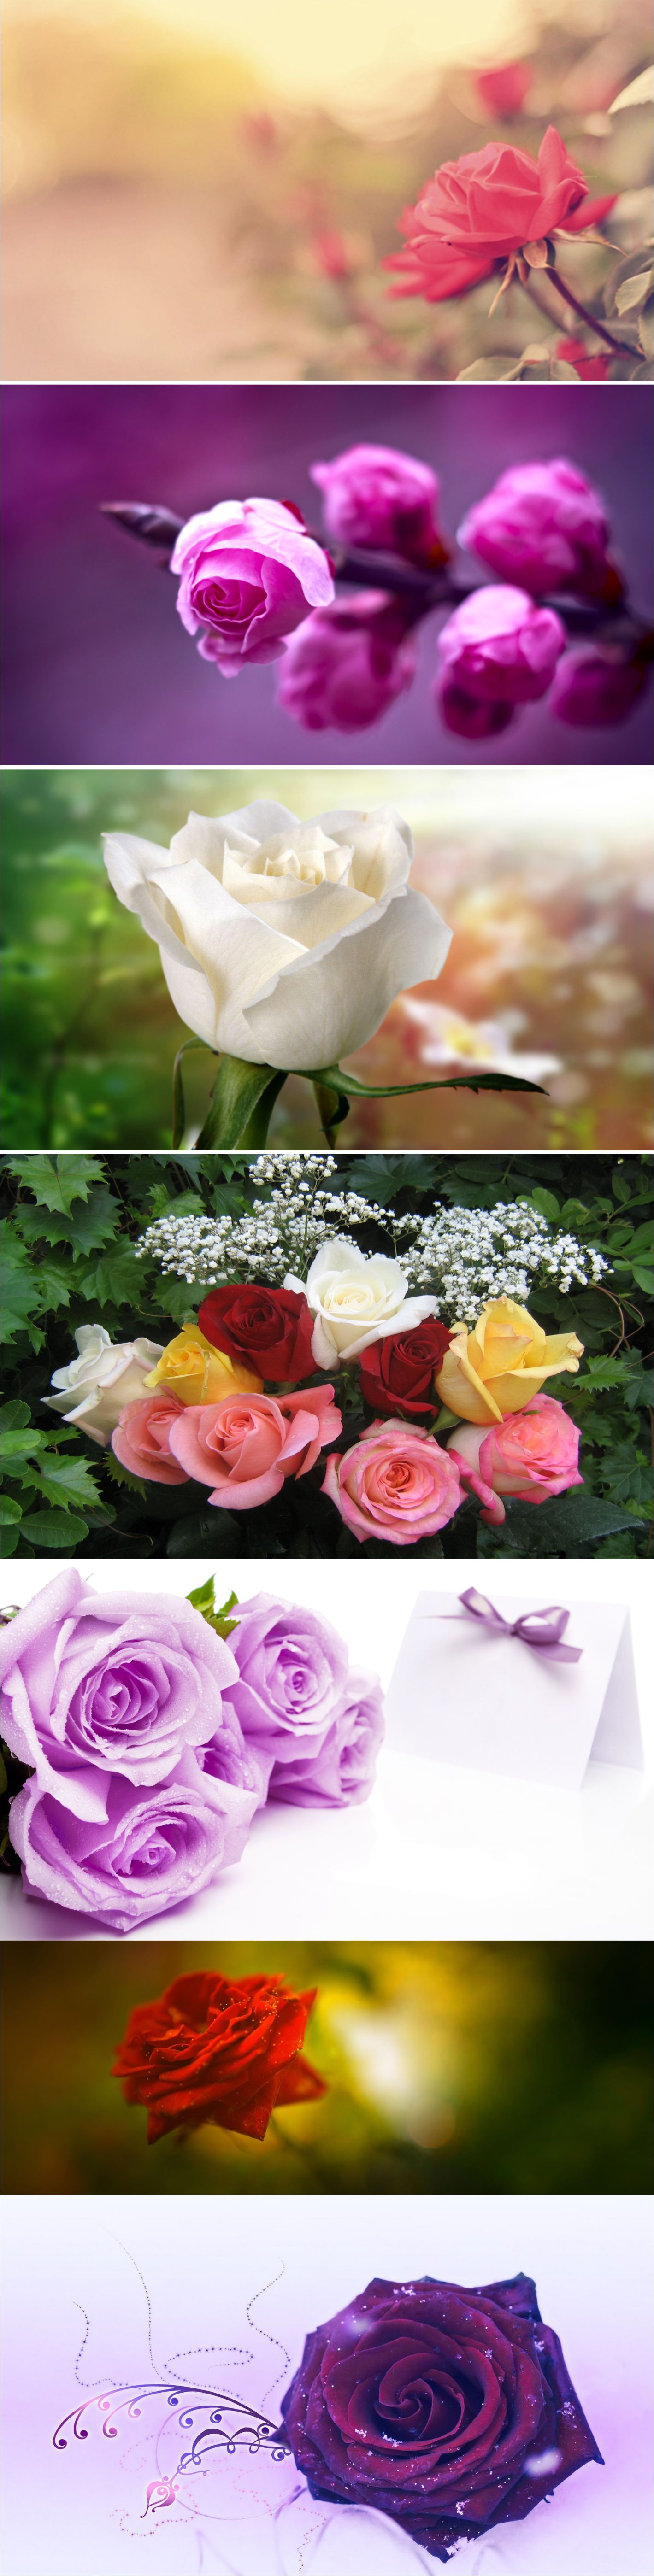 Beautiful rose images and wallpapers 2018